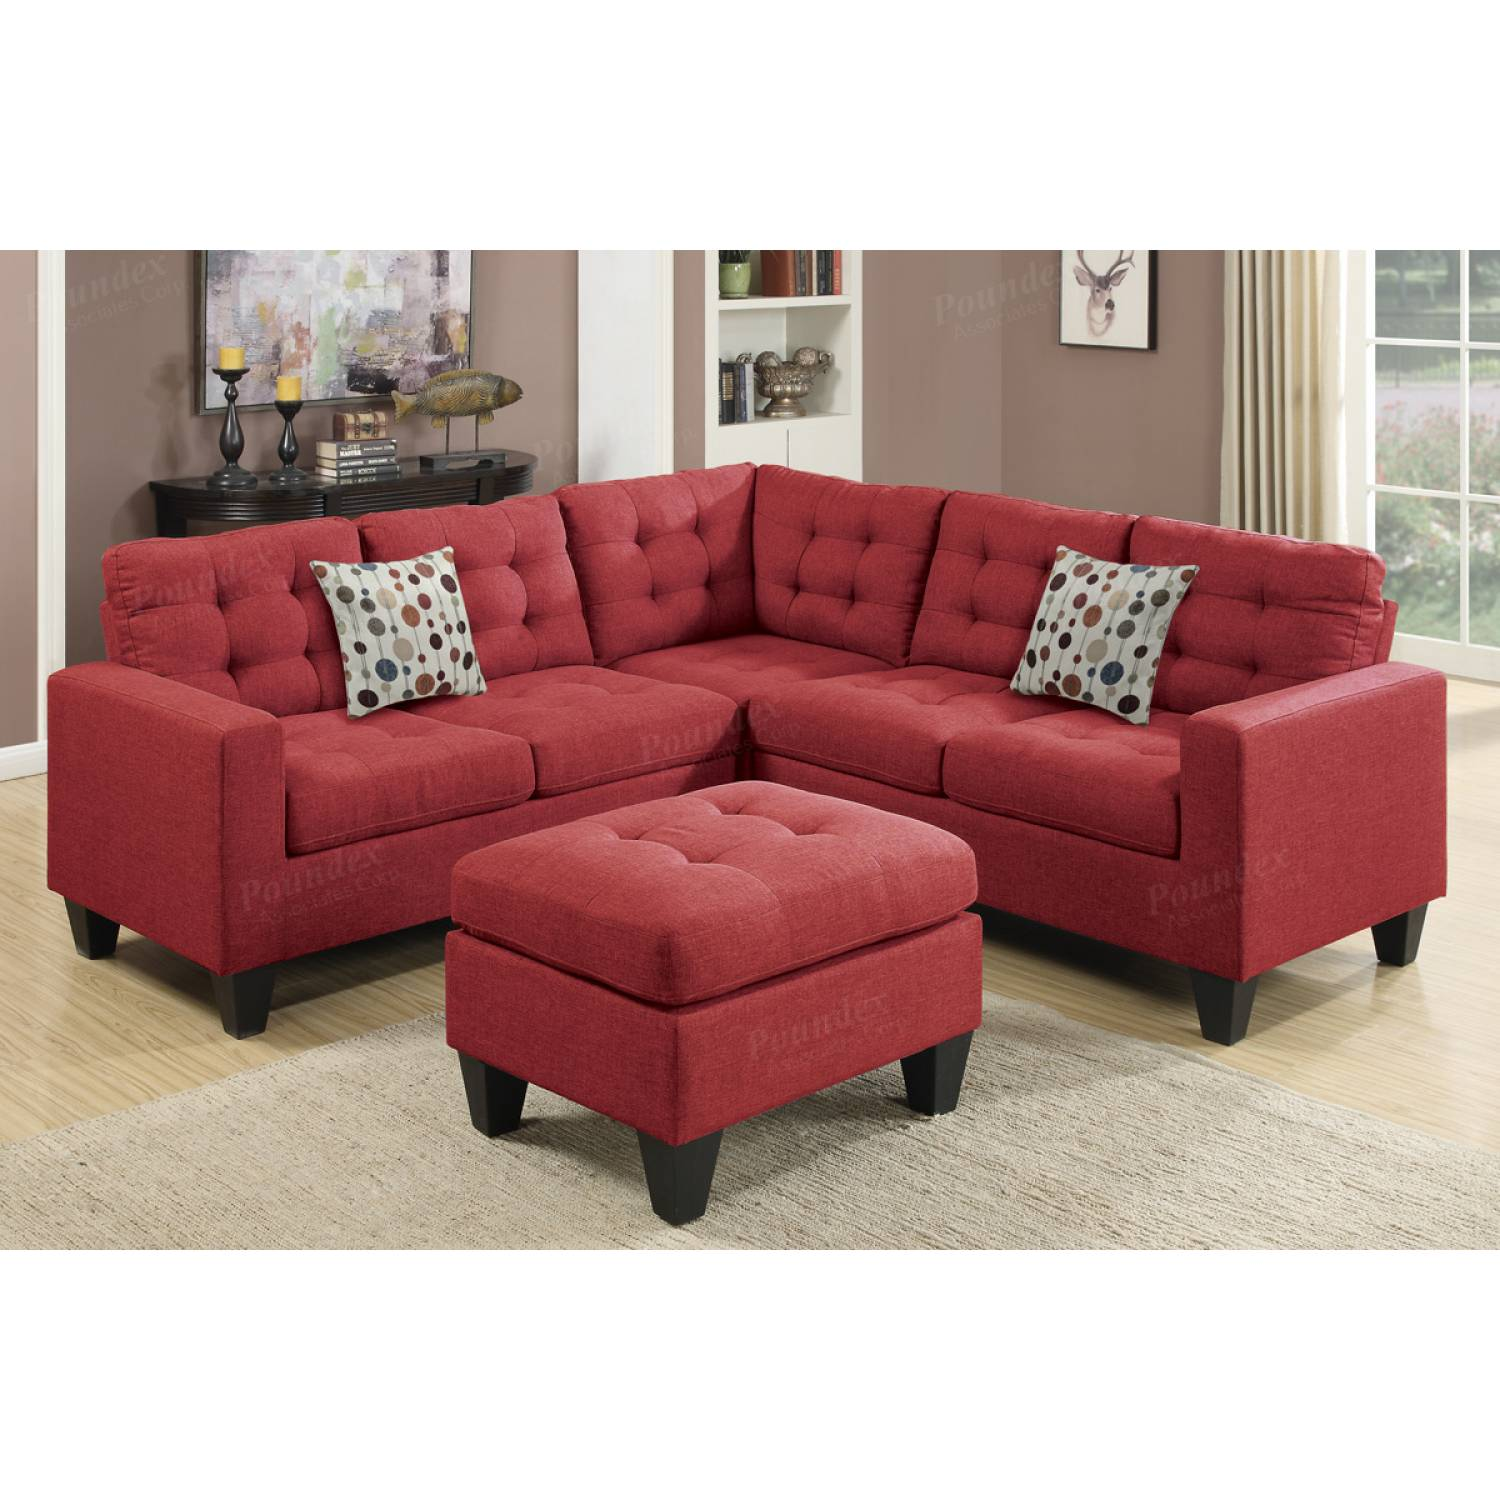 4 Pcs Modular Sectional